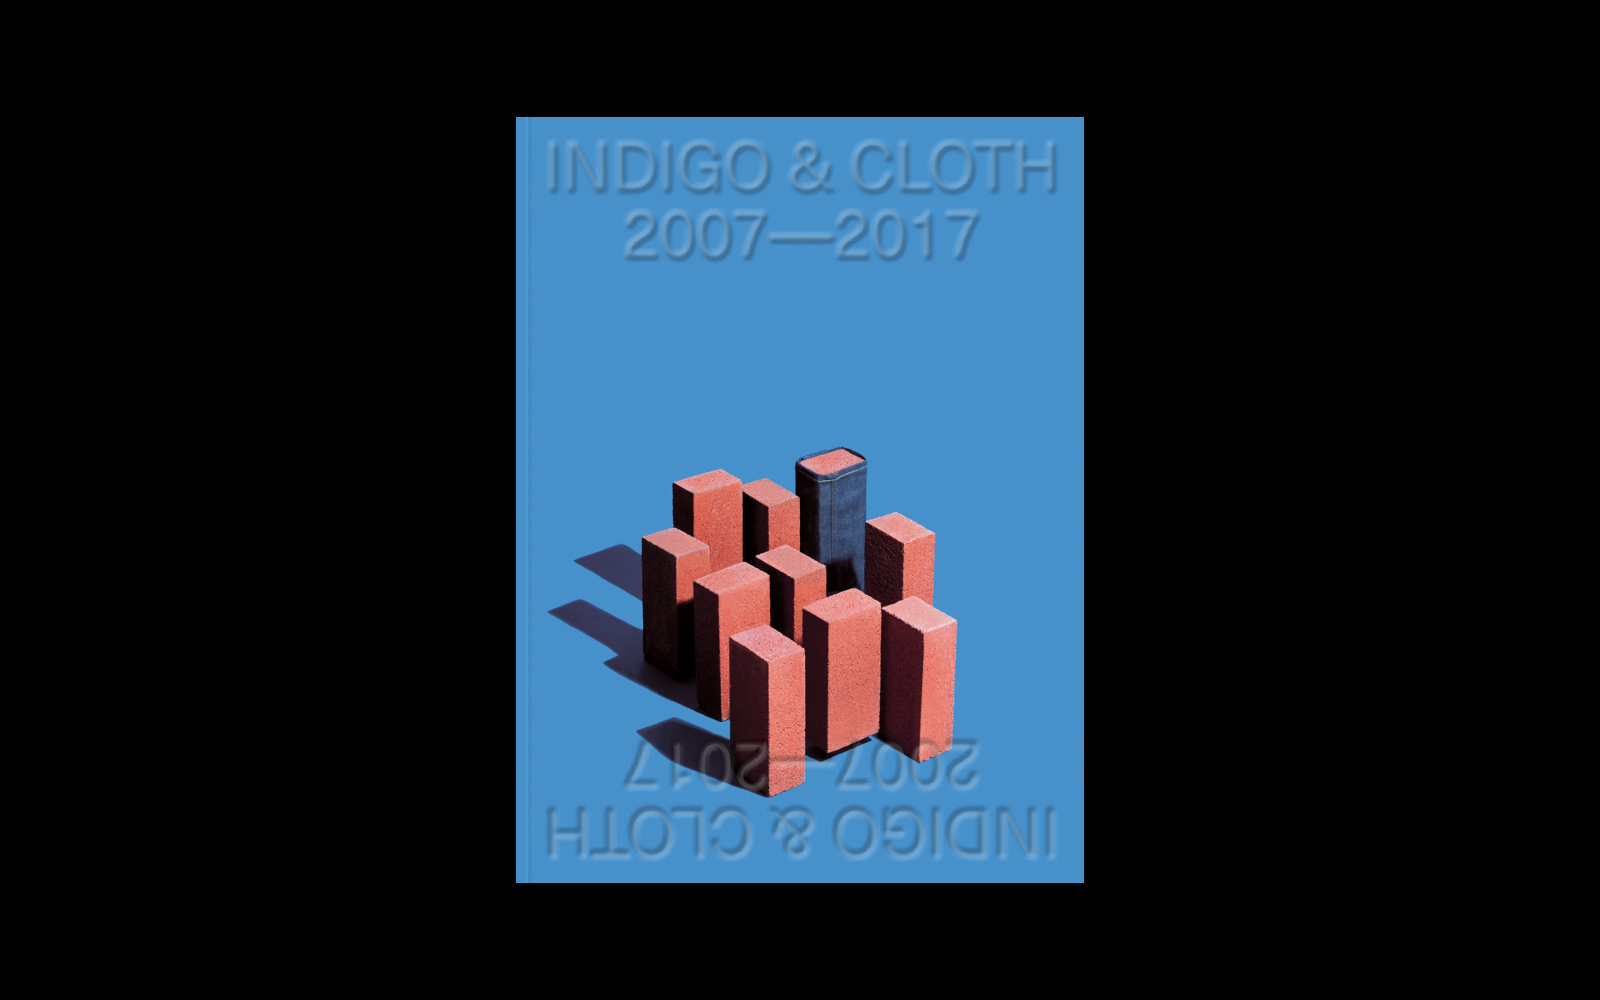 Cover image: INDIGO & CLOTH 2007 - 2017